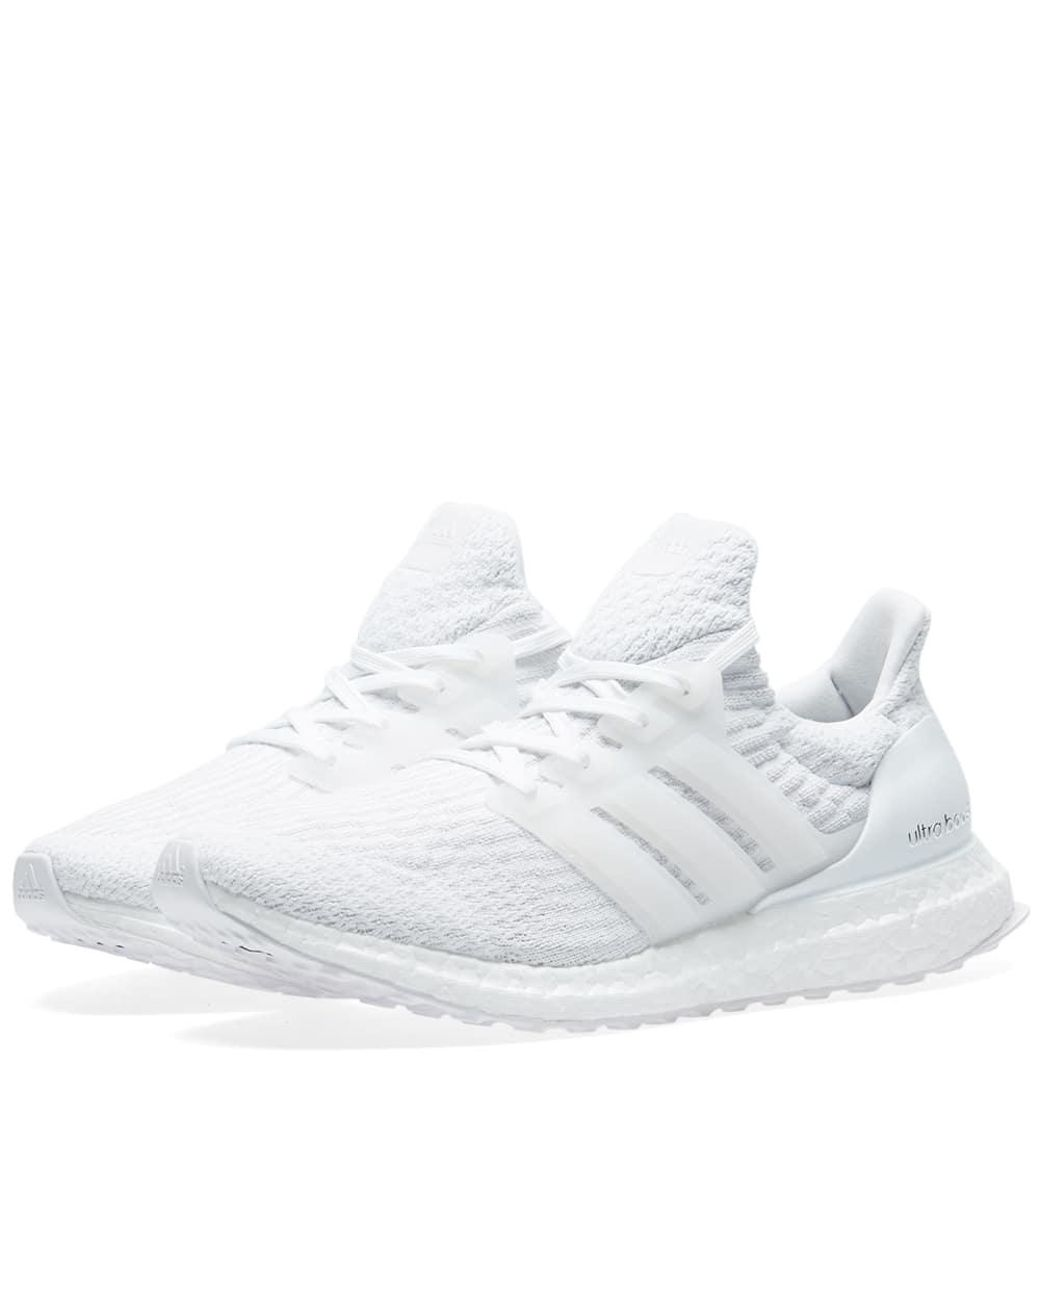 012999f3836 adidas Ultra Boost 3.0 in White for Men - Lyst